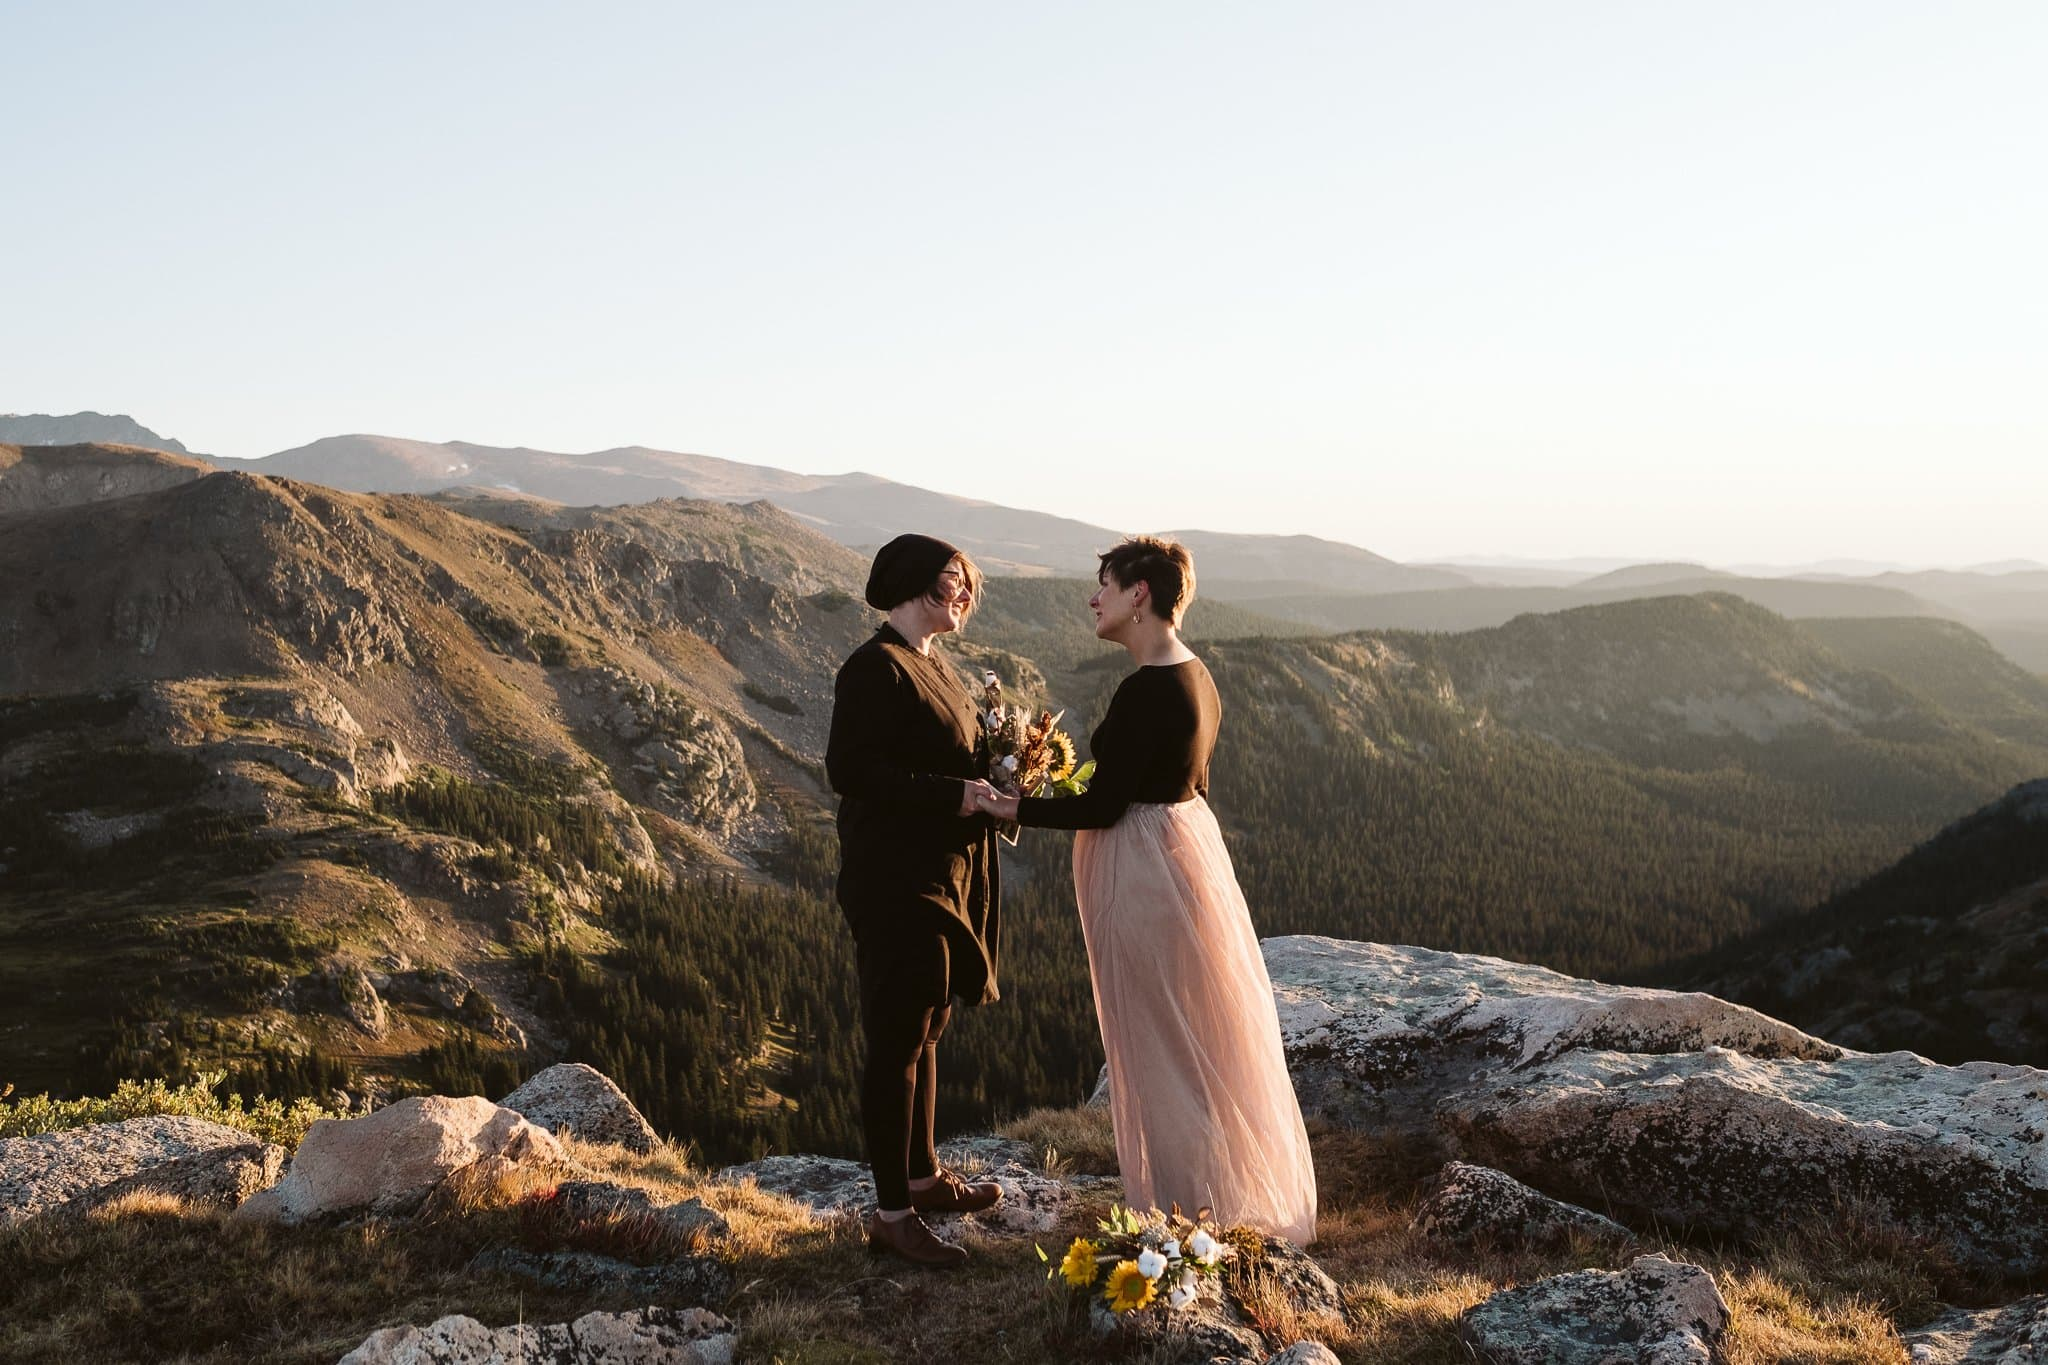 Indian Peaks Wilderness hiking elopement near Boulder and Winter Park, Colorado lgbtq wedding photographer